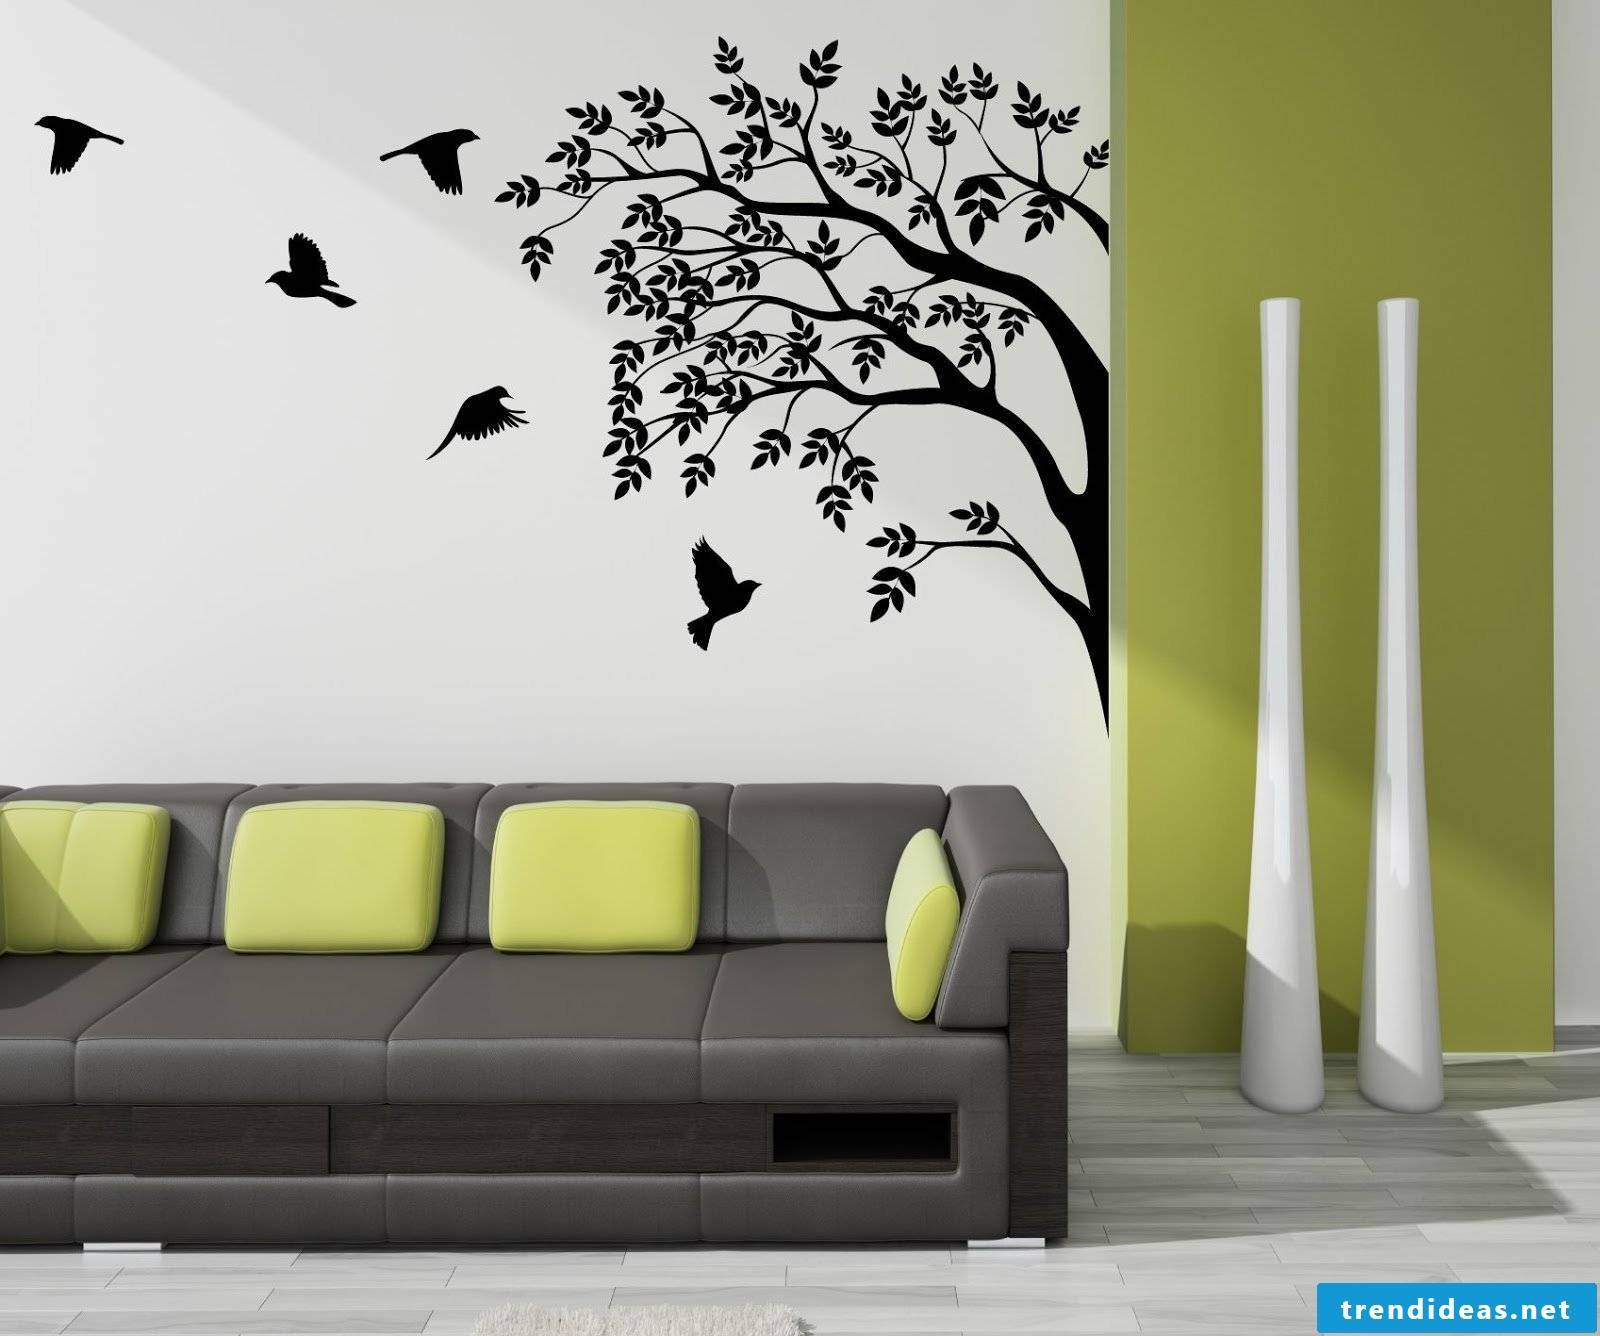 Chic and made fast - wall stickers